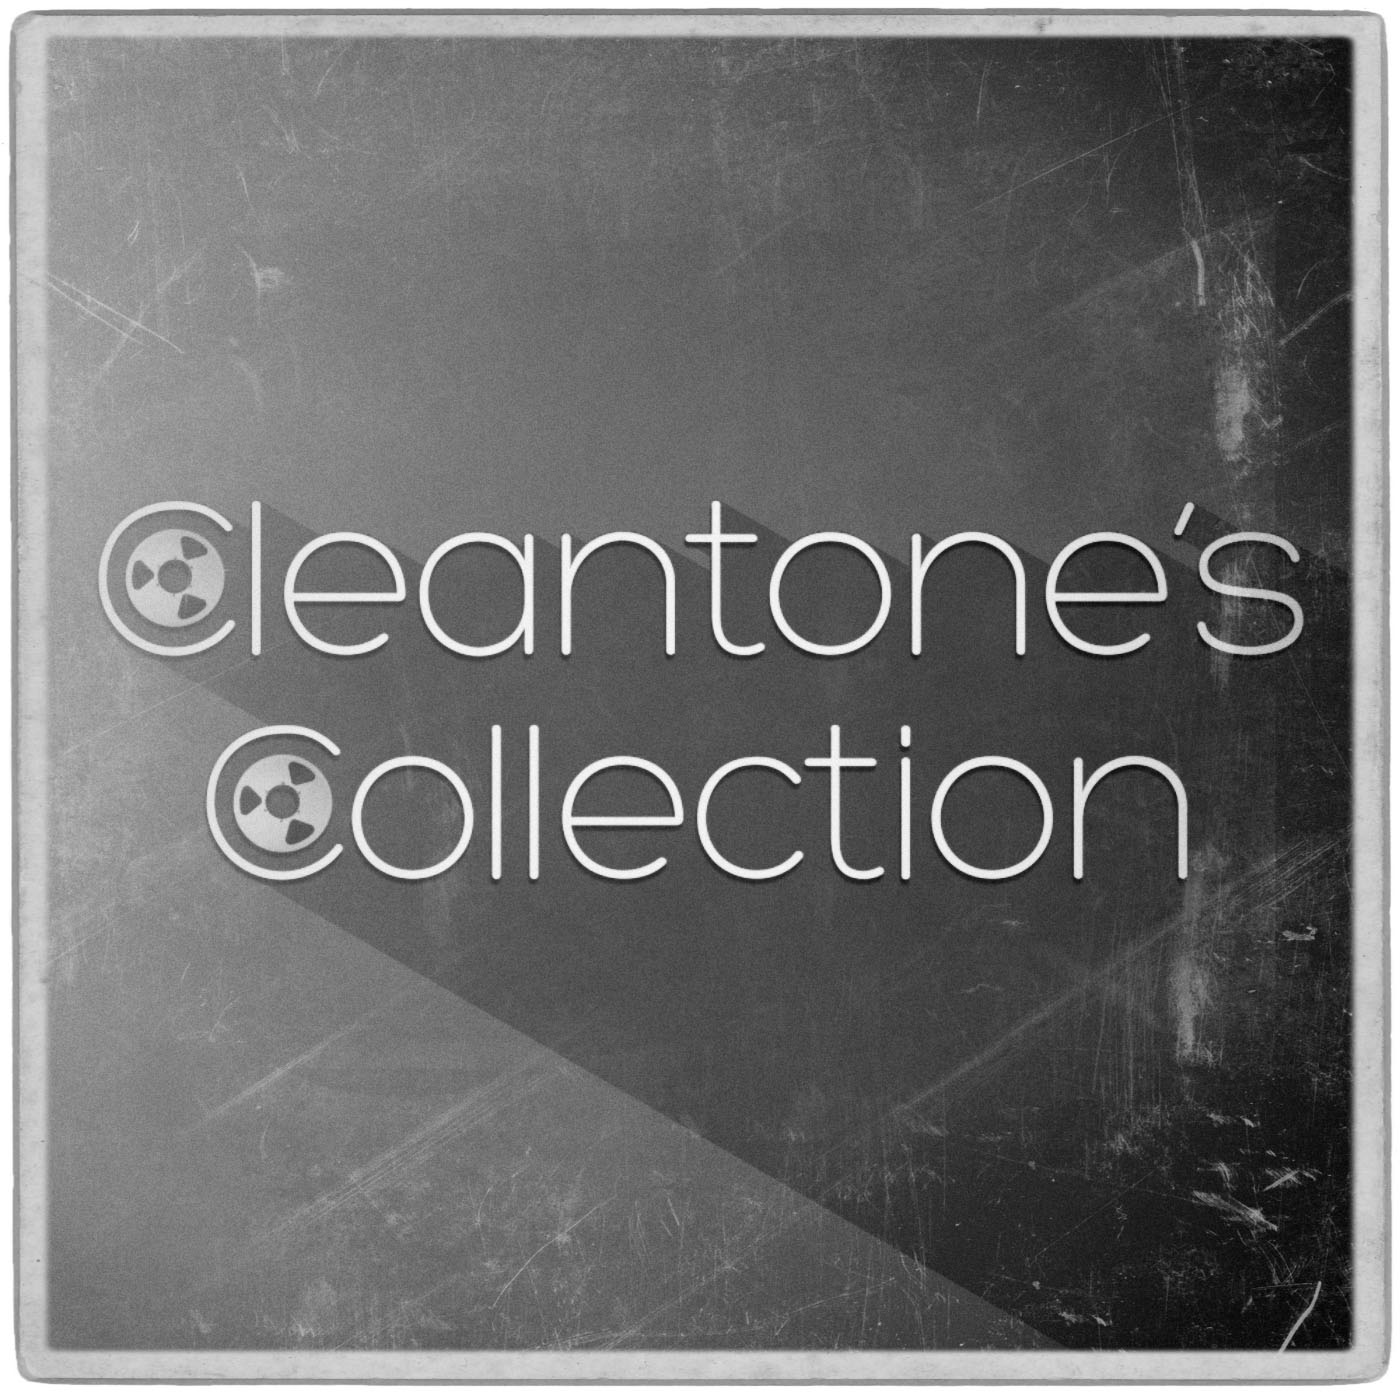 Cleantone's Collection